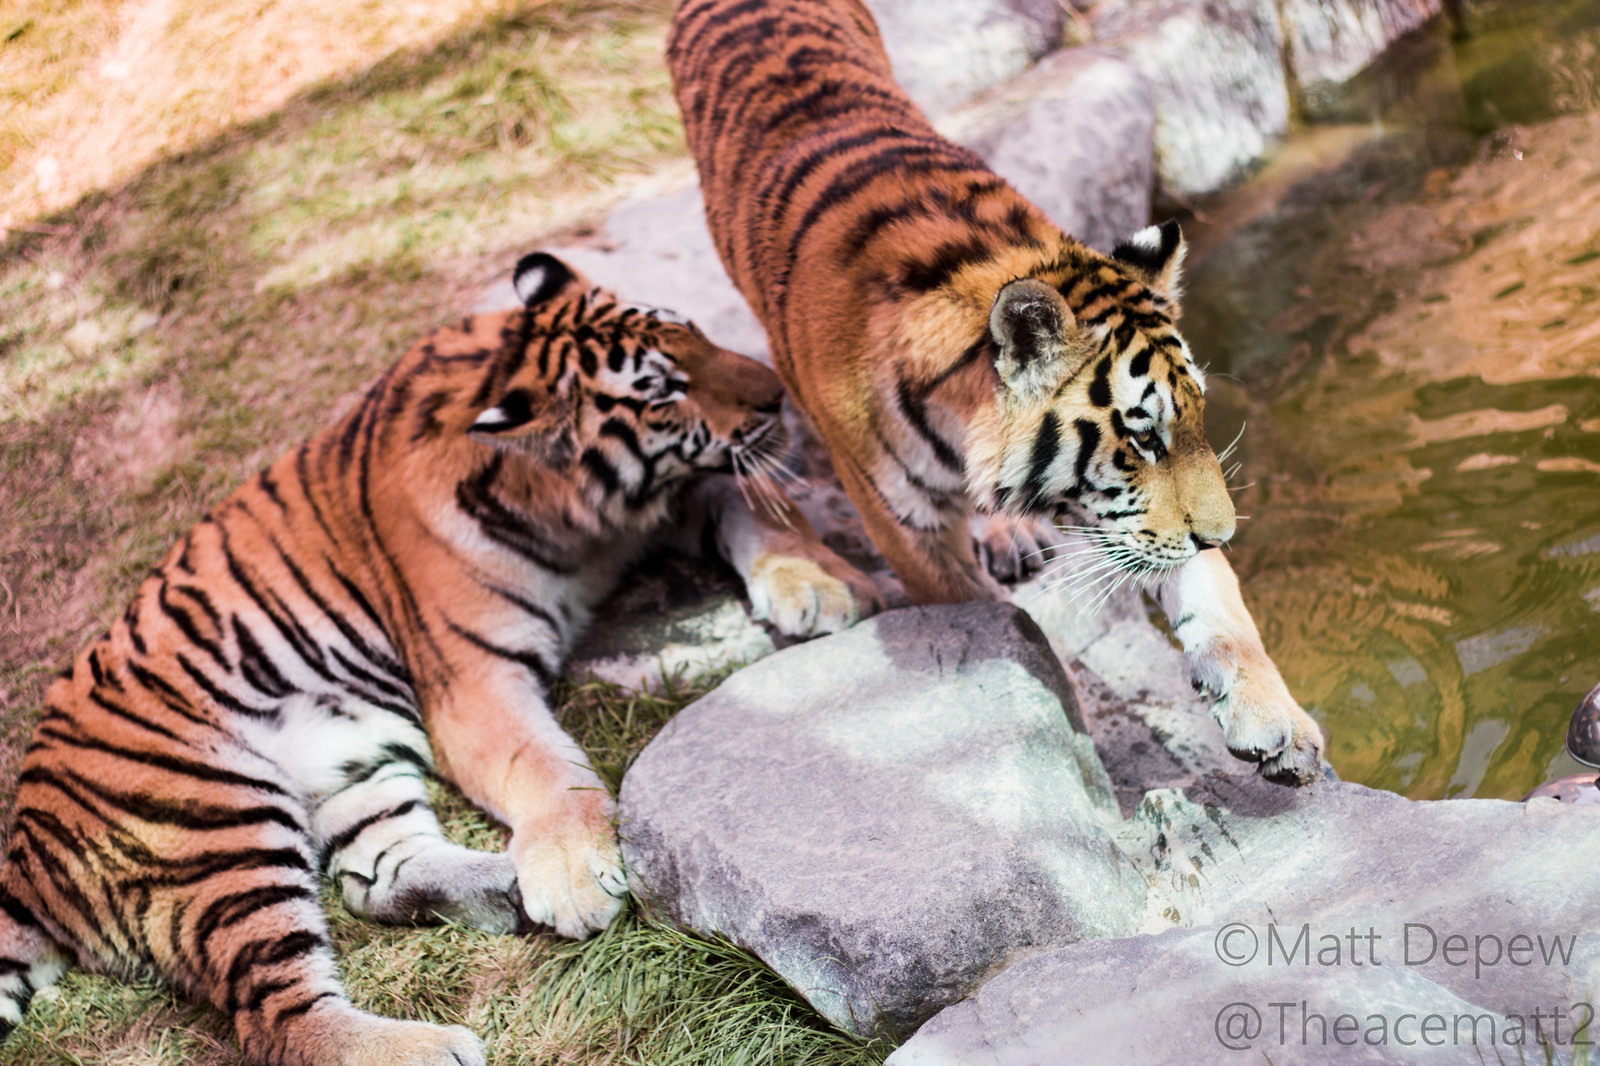 Myeongdong Market and Seoul Zoo, 29+30 August 2014